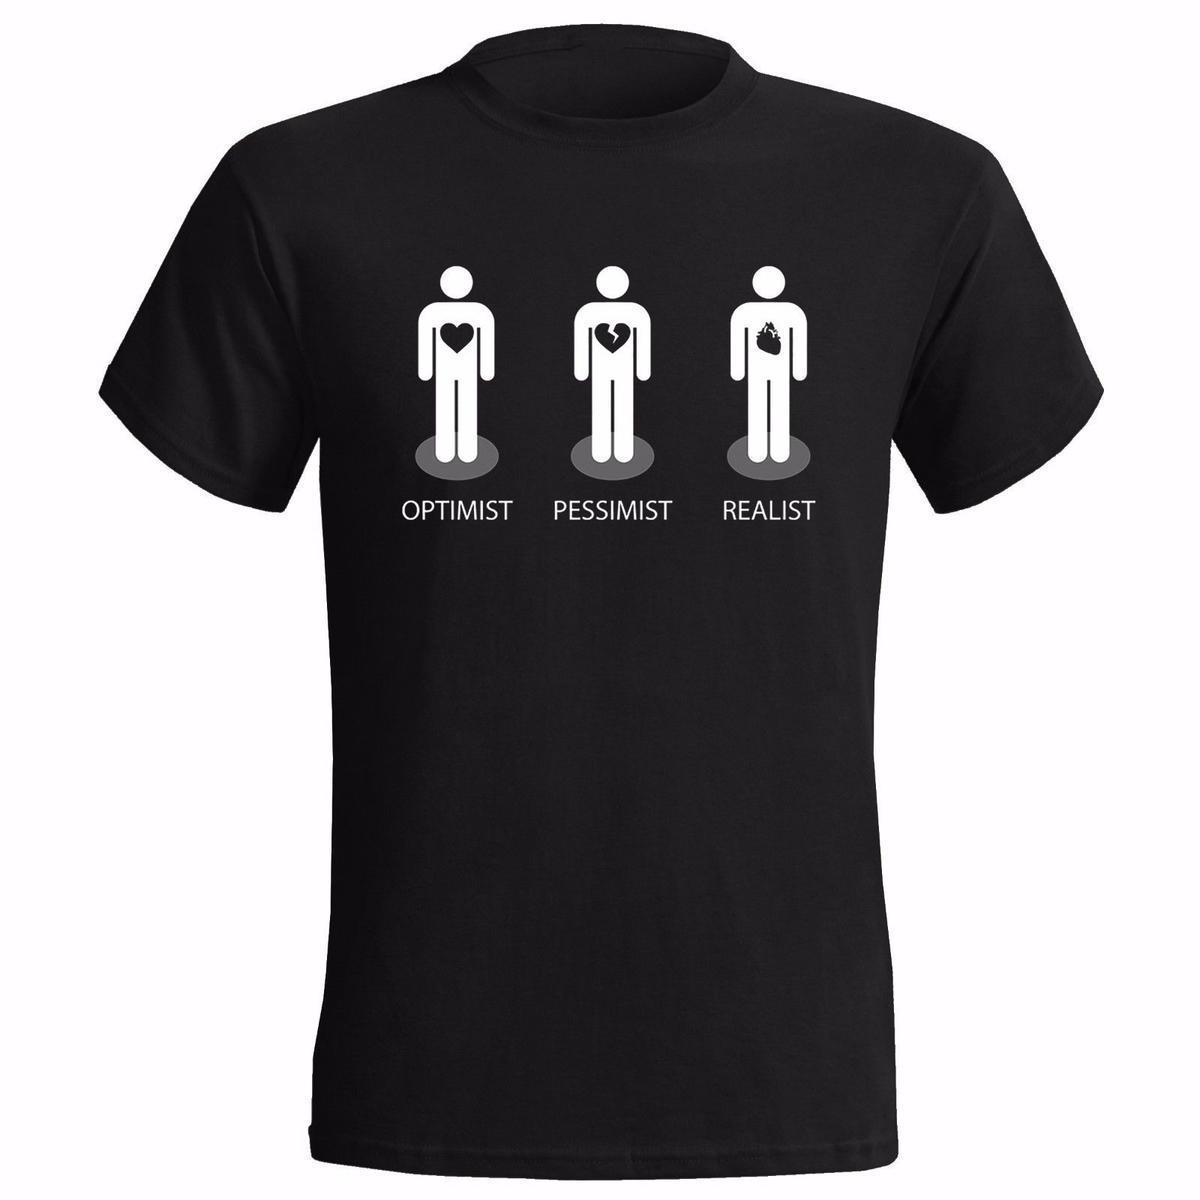 5d7a8a0a13 OPTIMIST PESSIMIST REALIST MENS T SHIRT RELATIONSHIP MOOD SCIENCE  SCIENTIIFIC Tshirt Hot New Fashion Top Shirts Fitted Shirts T Shirt Sale  From ...